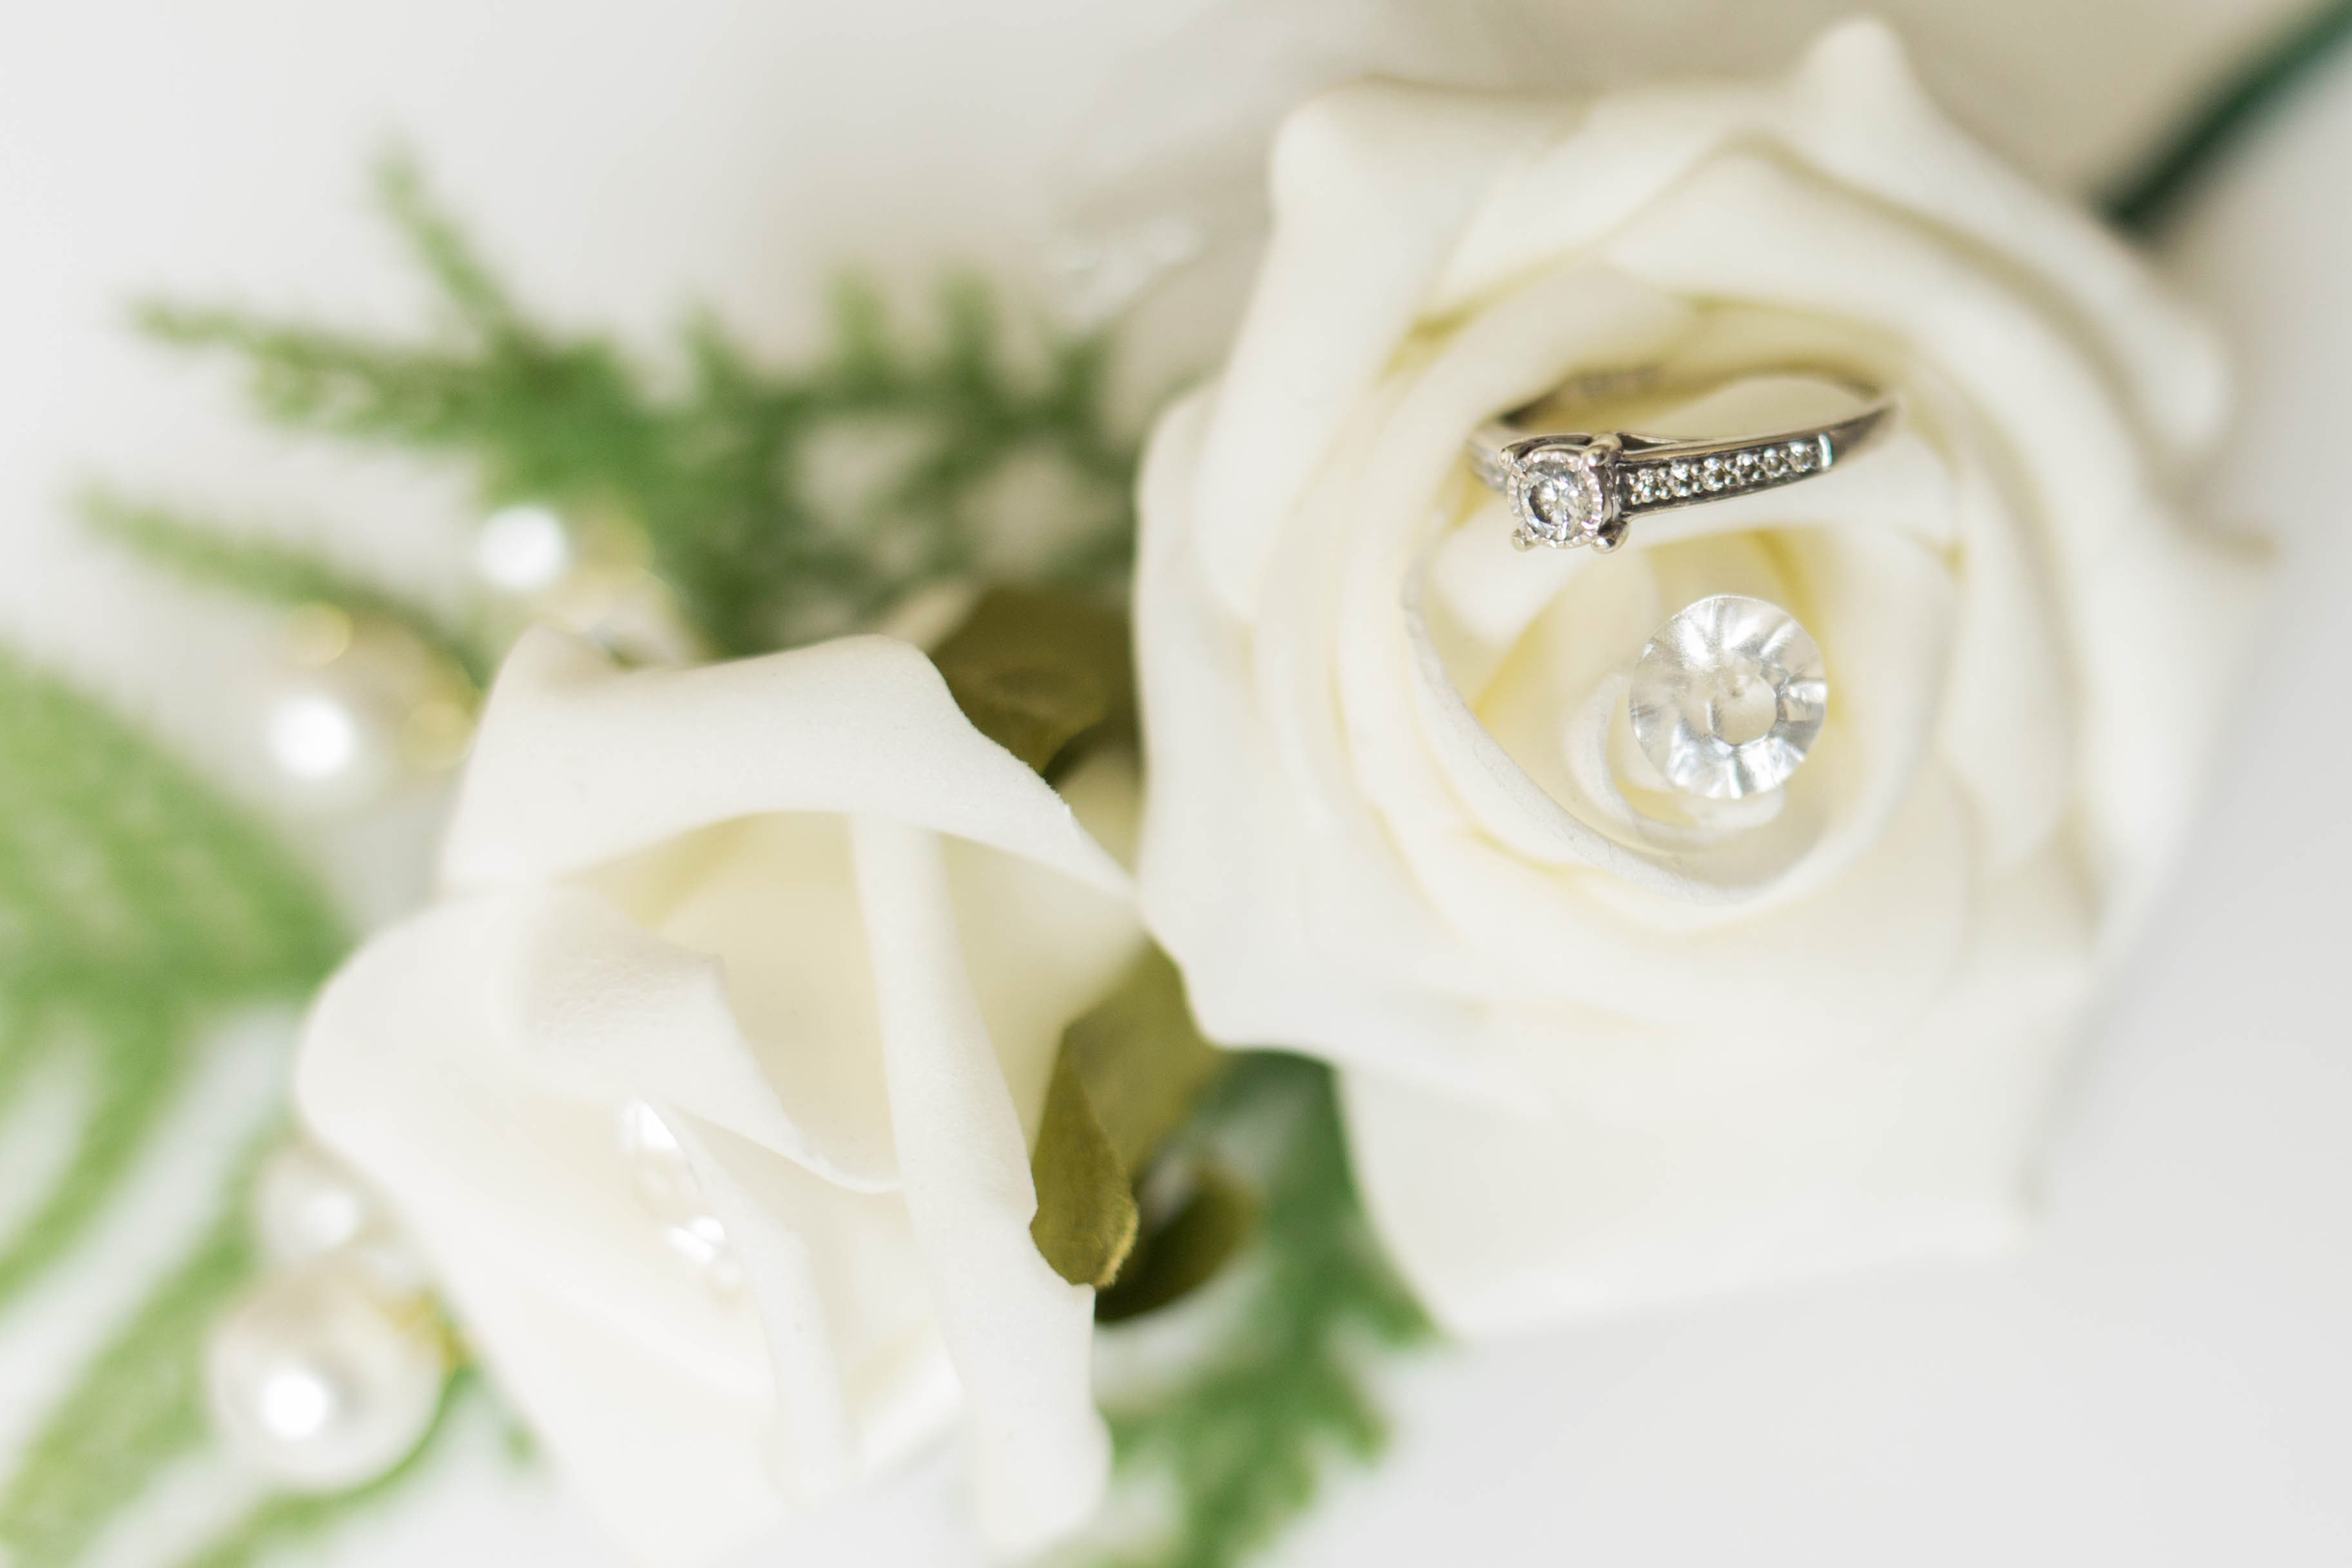 Oldham wedding photographer - wedding ring